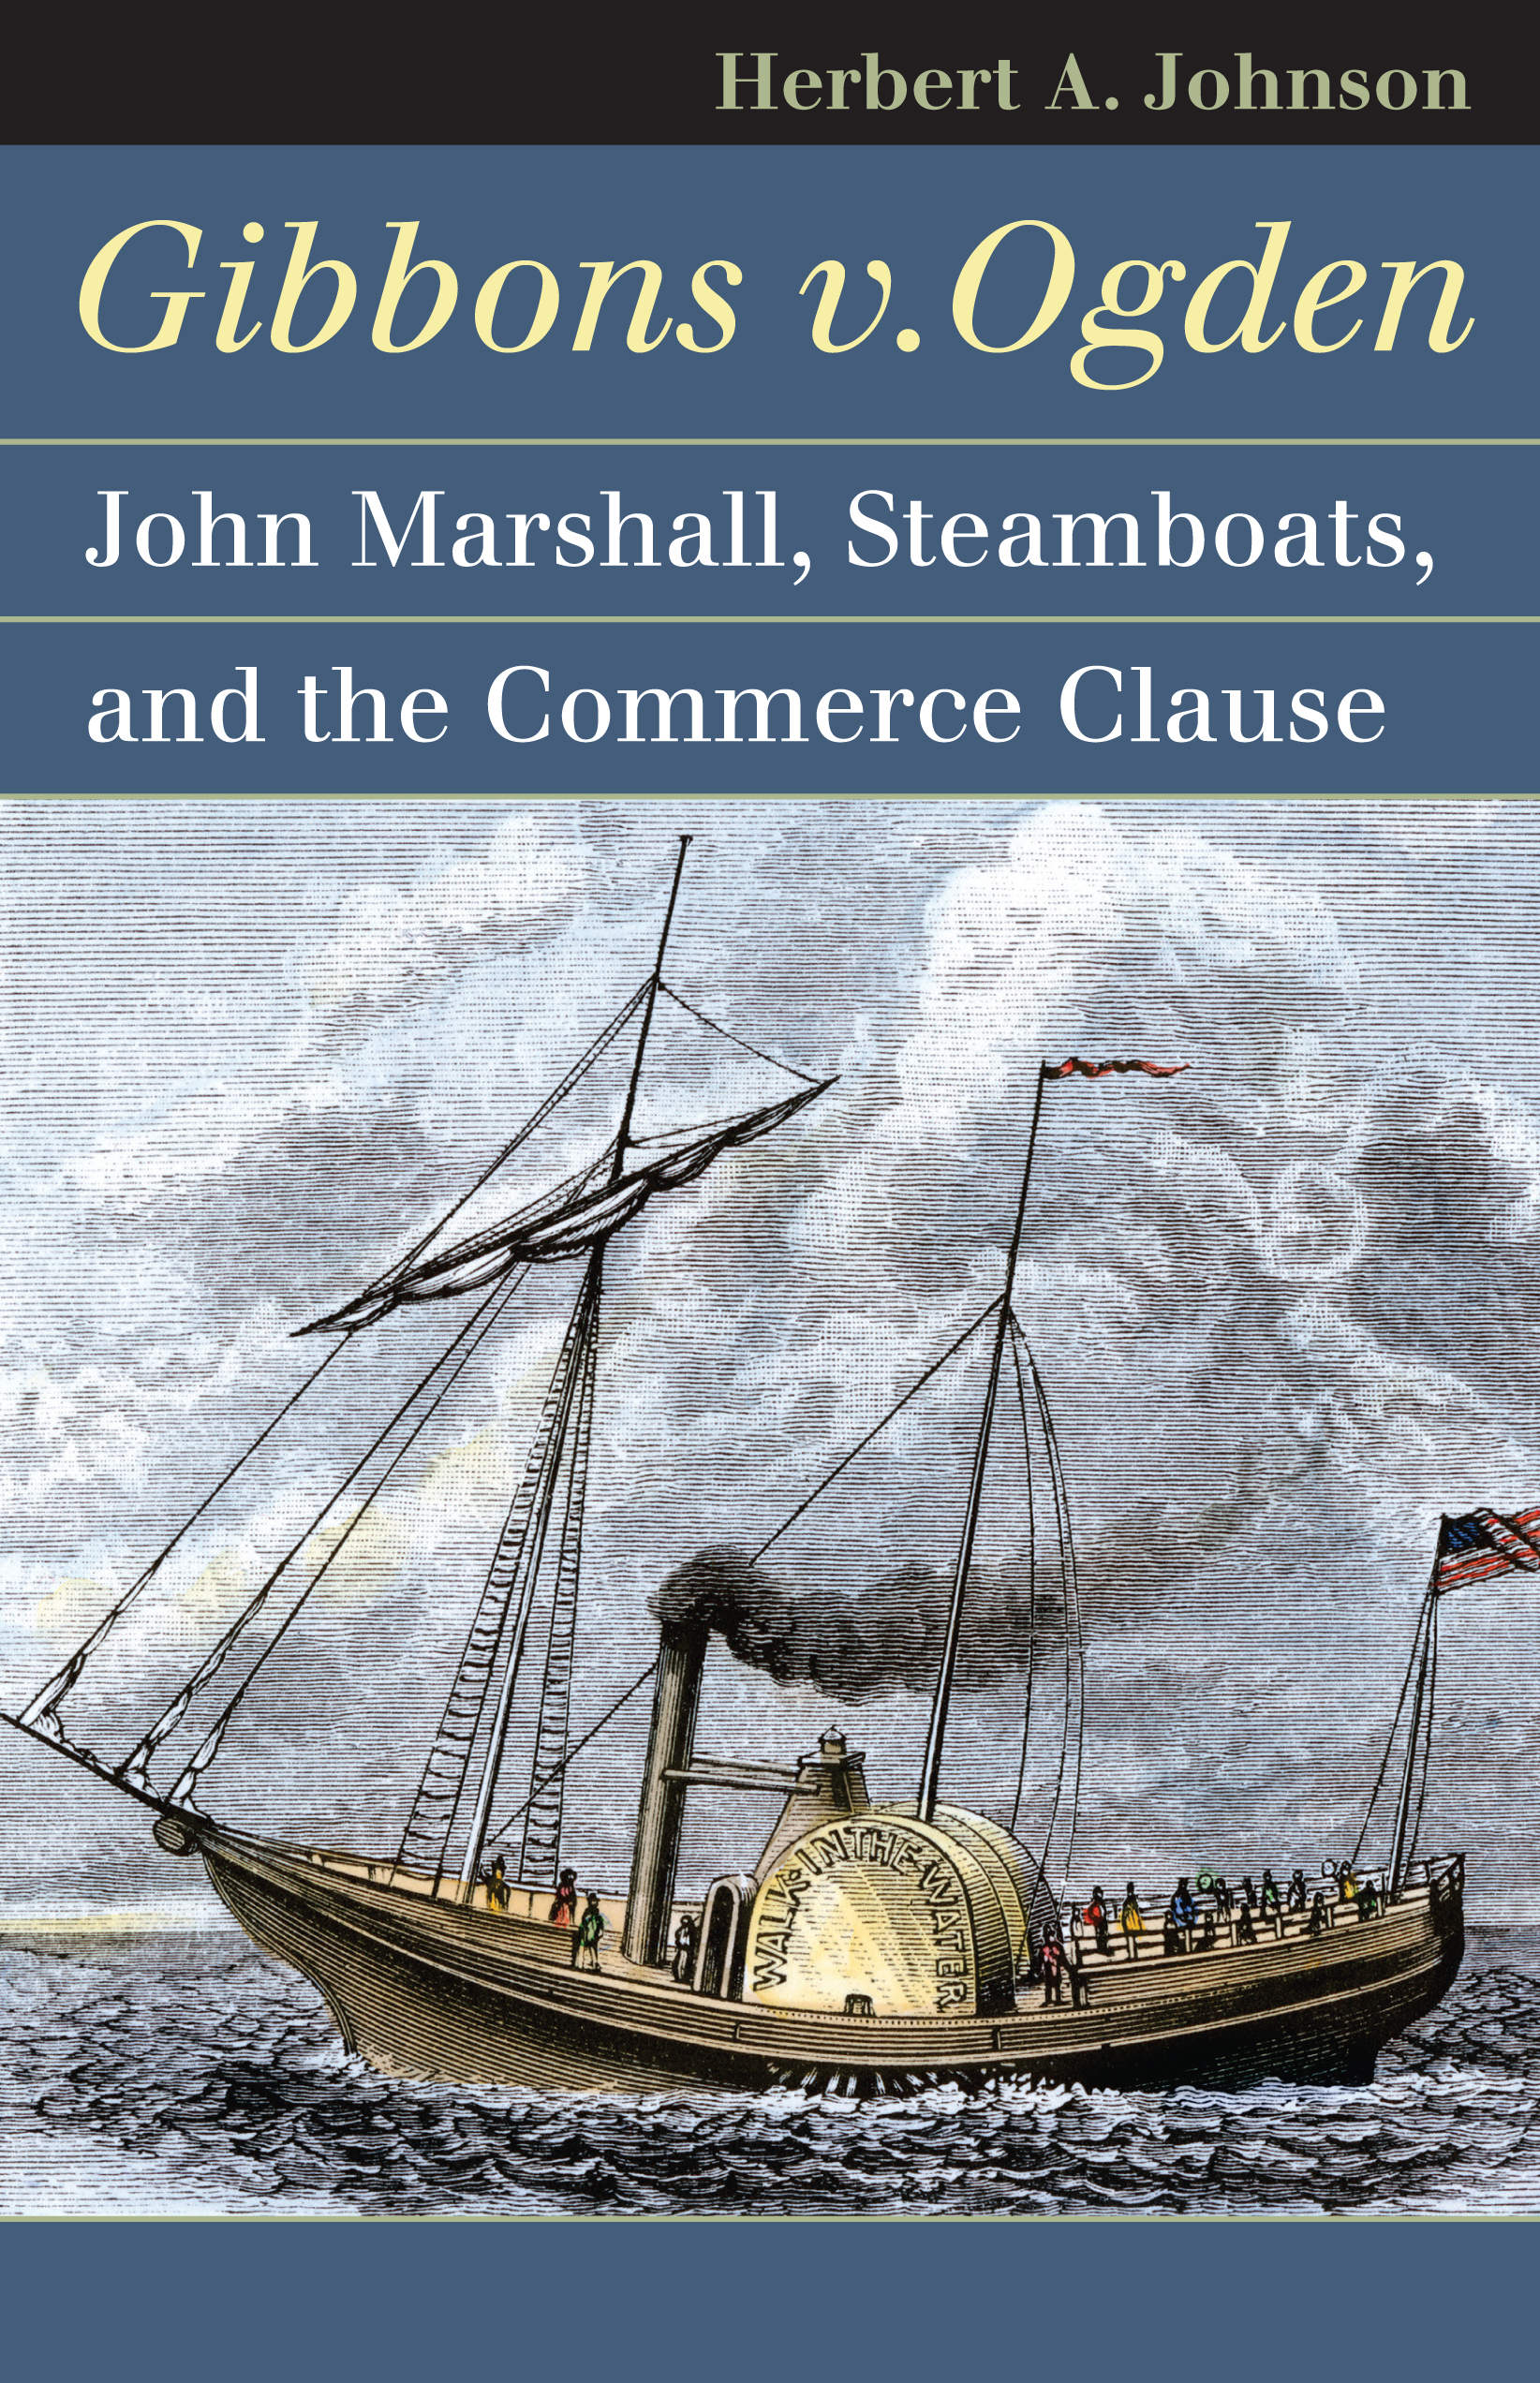 an essay on gibbons vs ogden Gibbons v ogden (1824, marshall) clarified the commerce clause and affirmed  congressional power over interstate commerce johnson v mcintosh (1823.